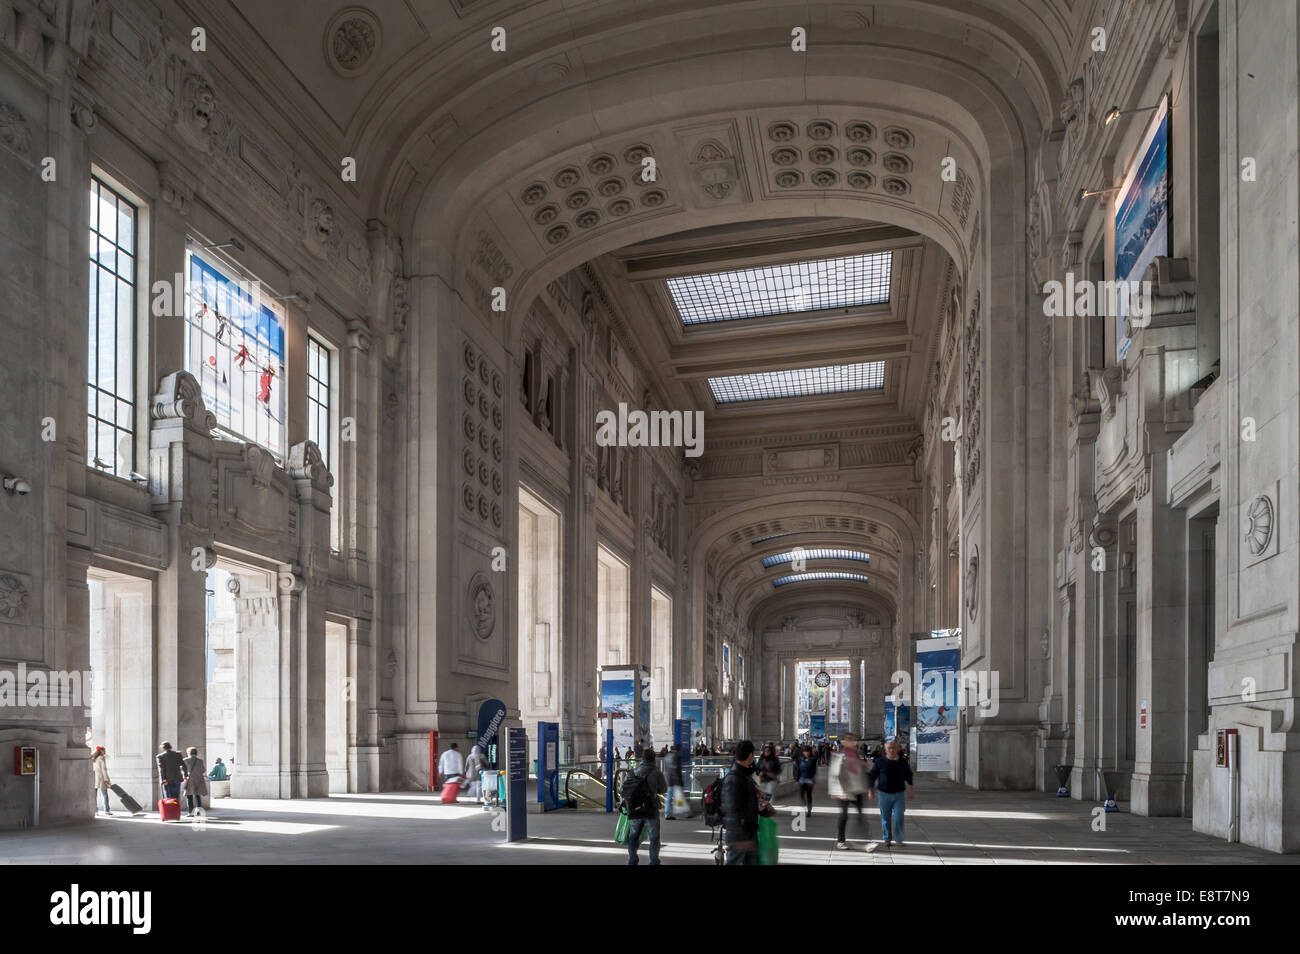 Entrance Hall, monumental architecture of the Italian fascism, 1931, Milano Centrale railway statio, Milan, Lombardy, - Stock Image